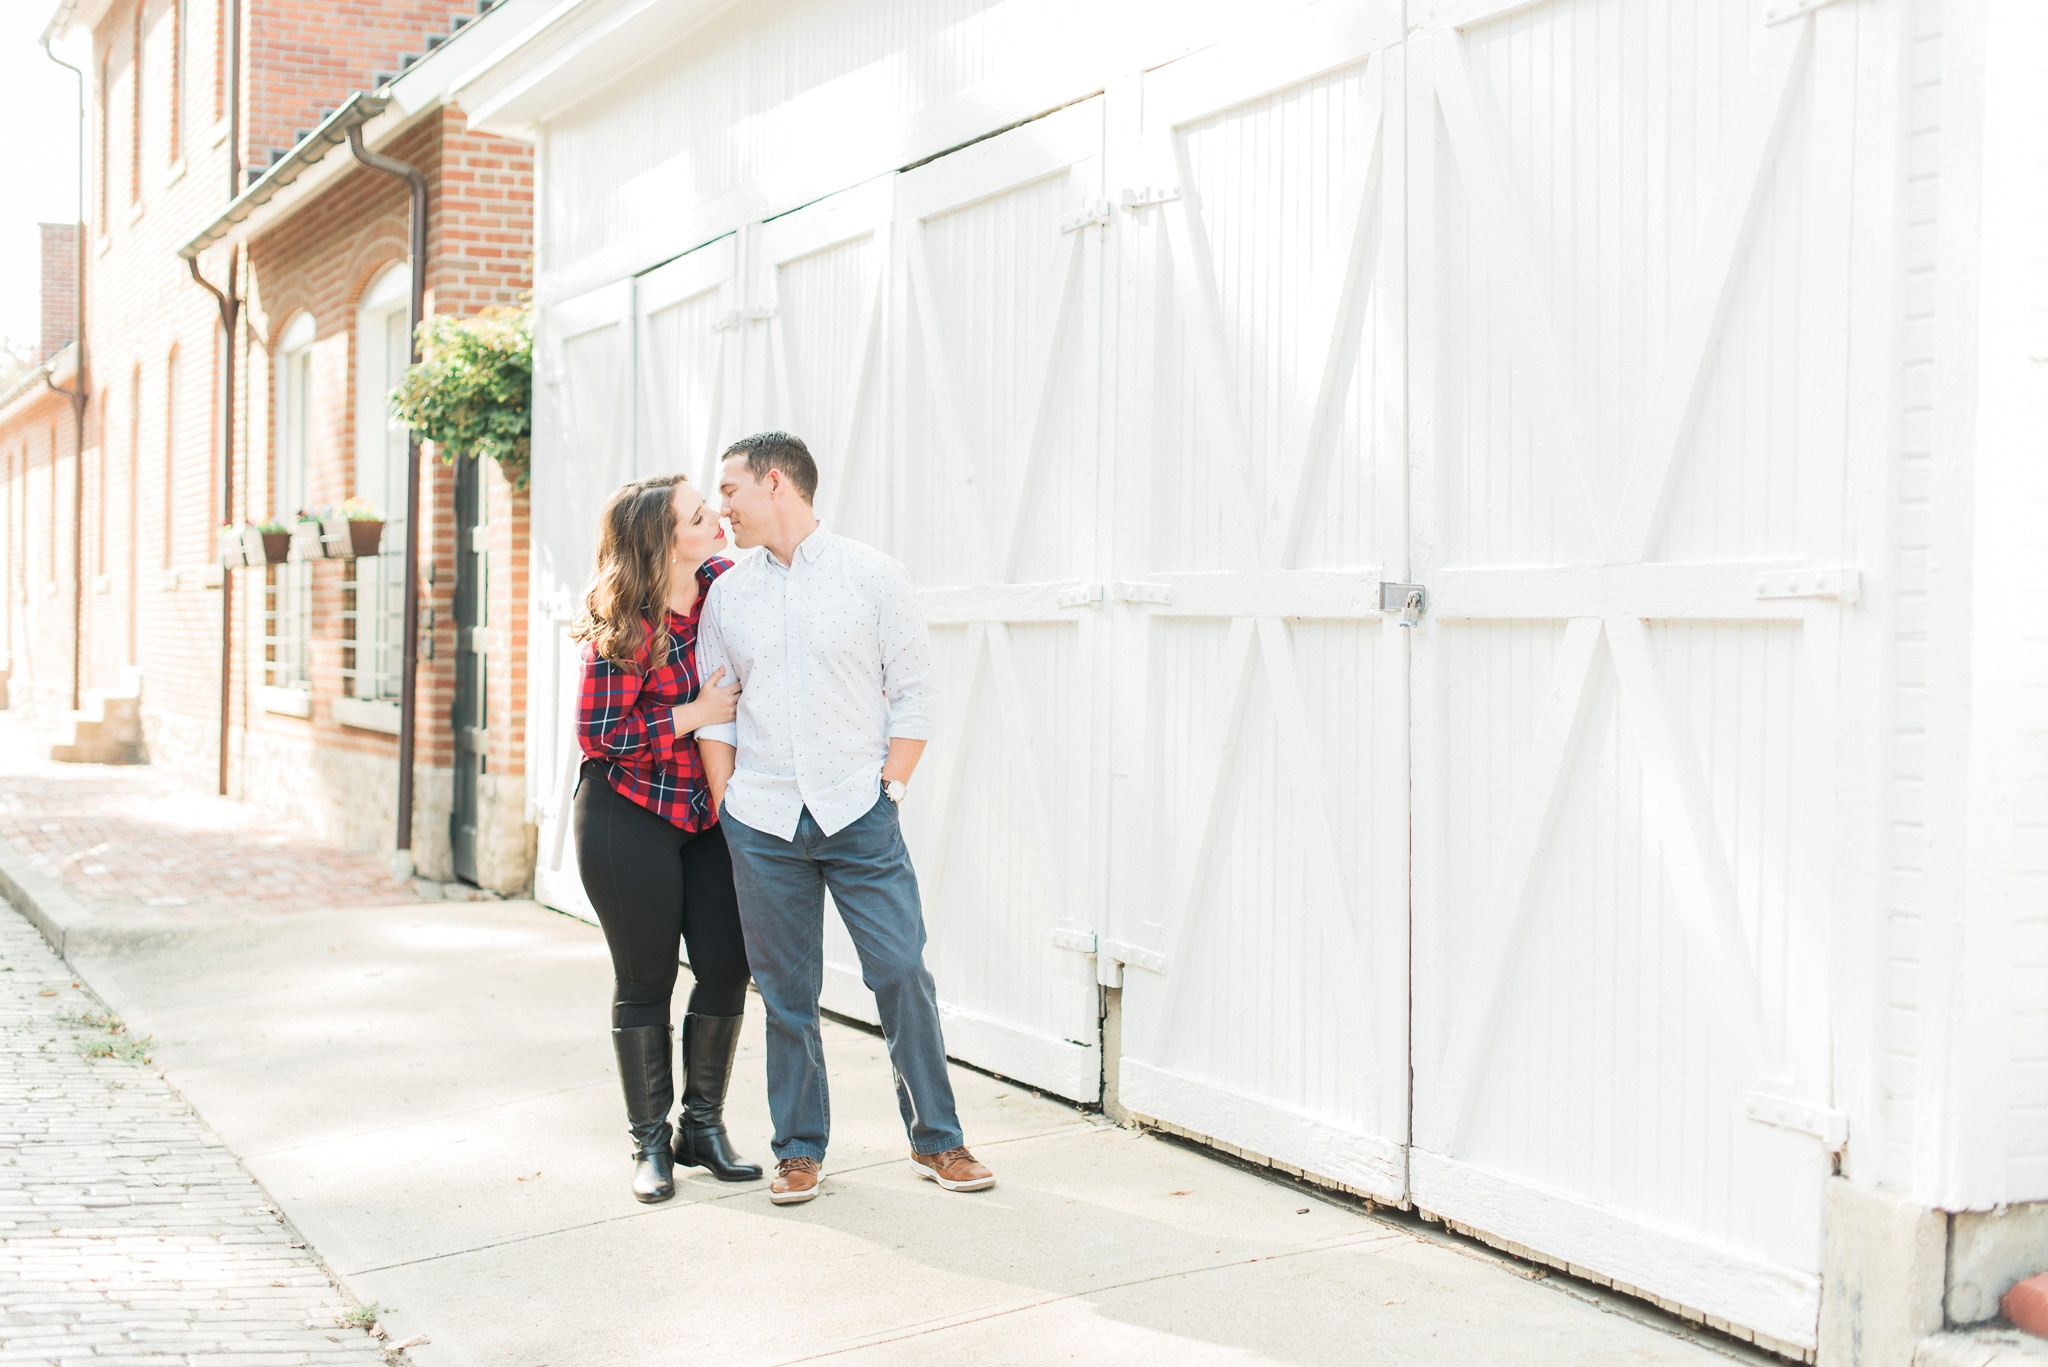 downtown-columbus-german-village-engagement-session-19.jpg